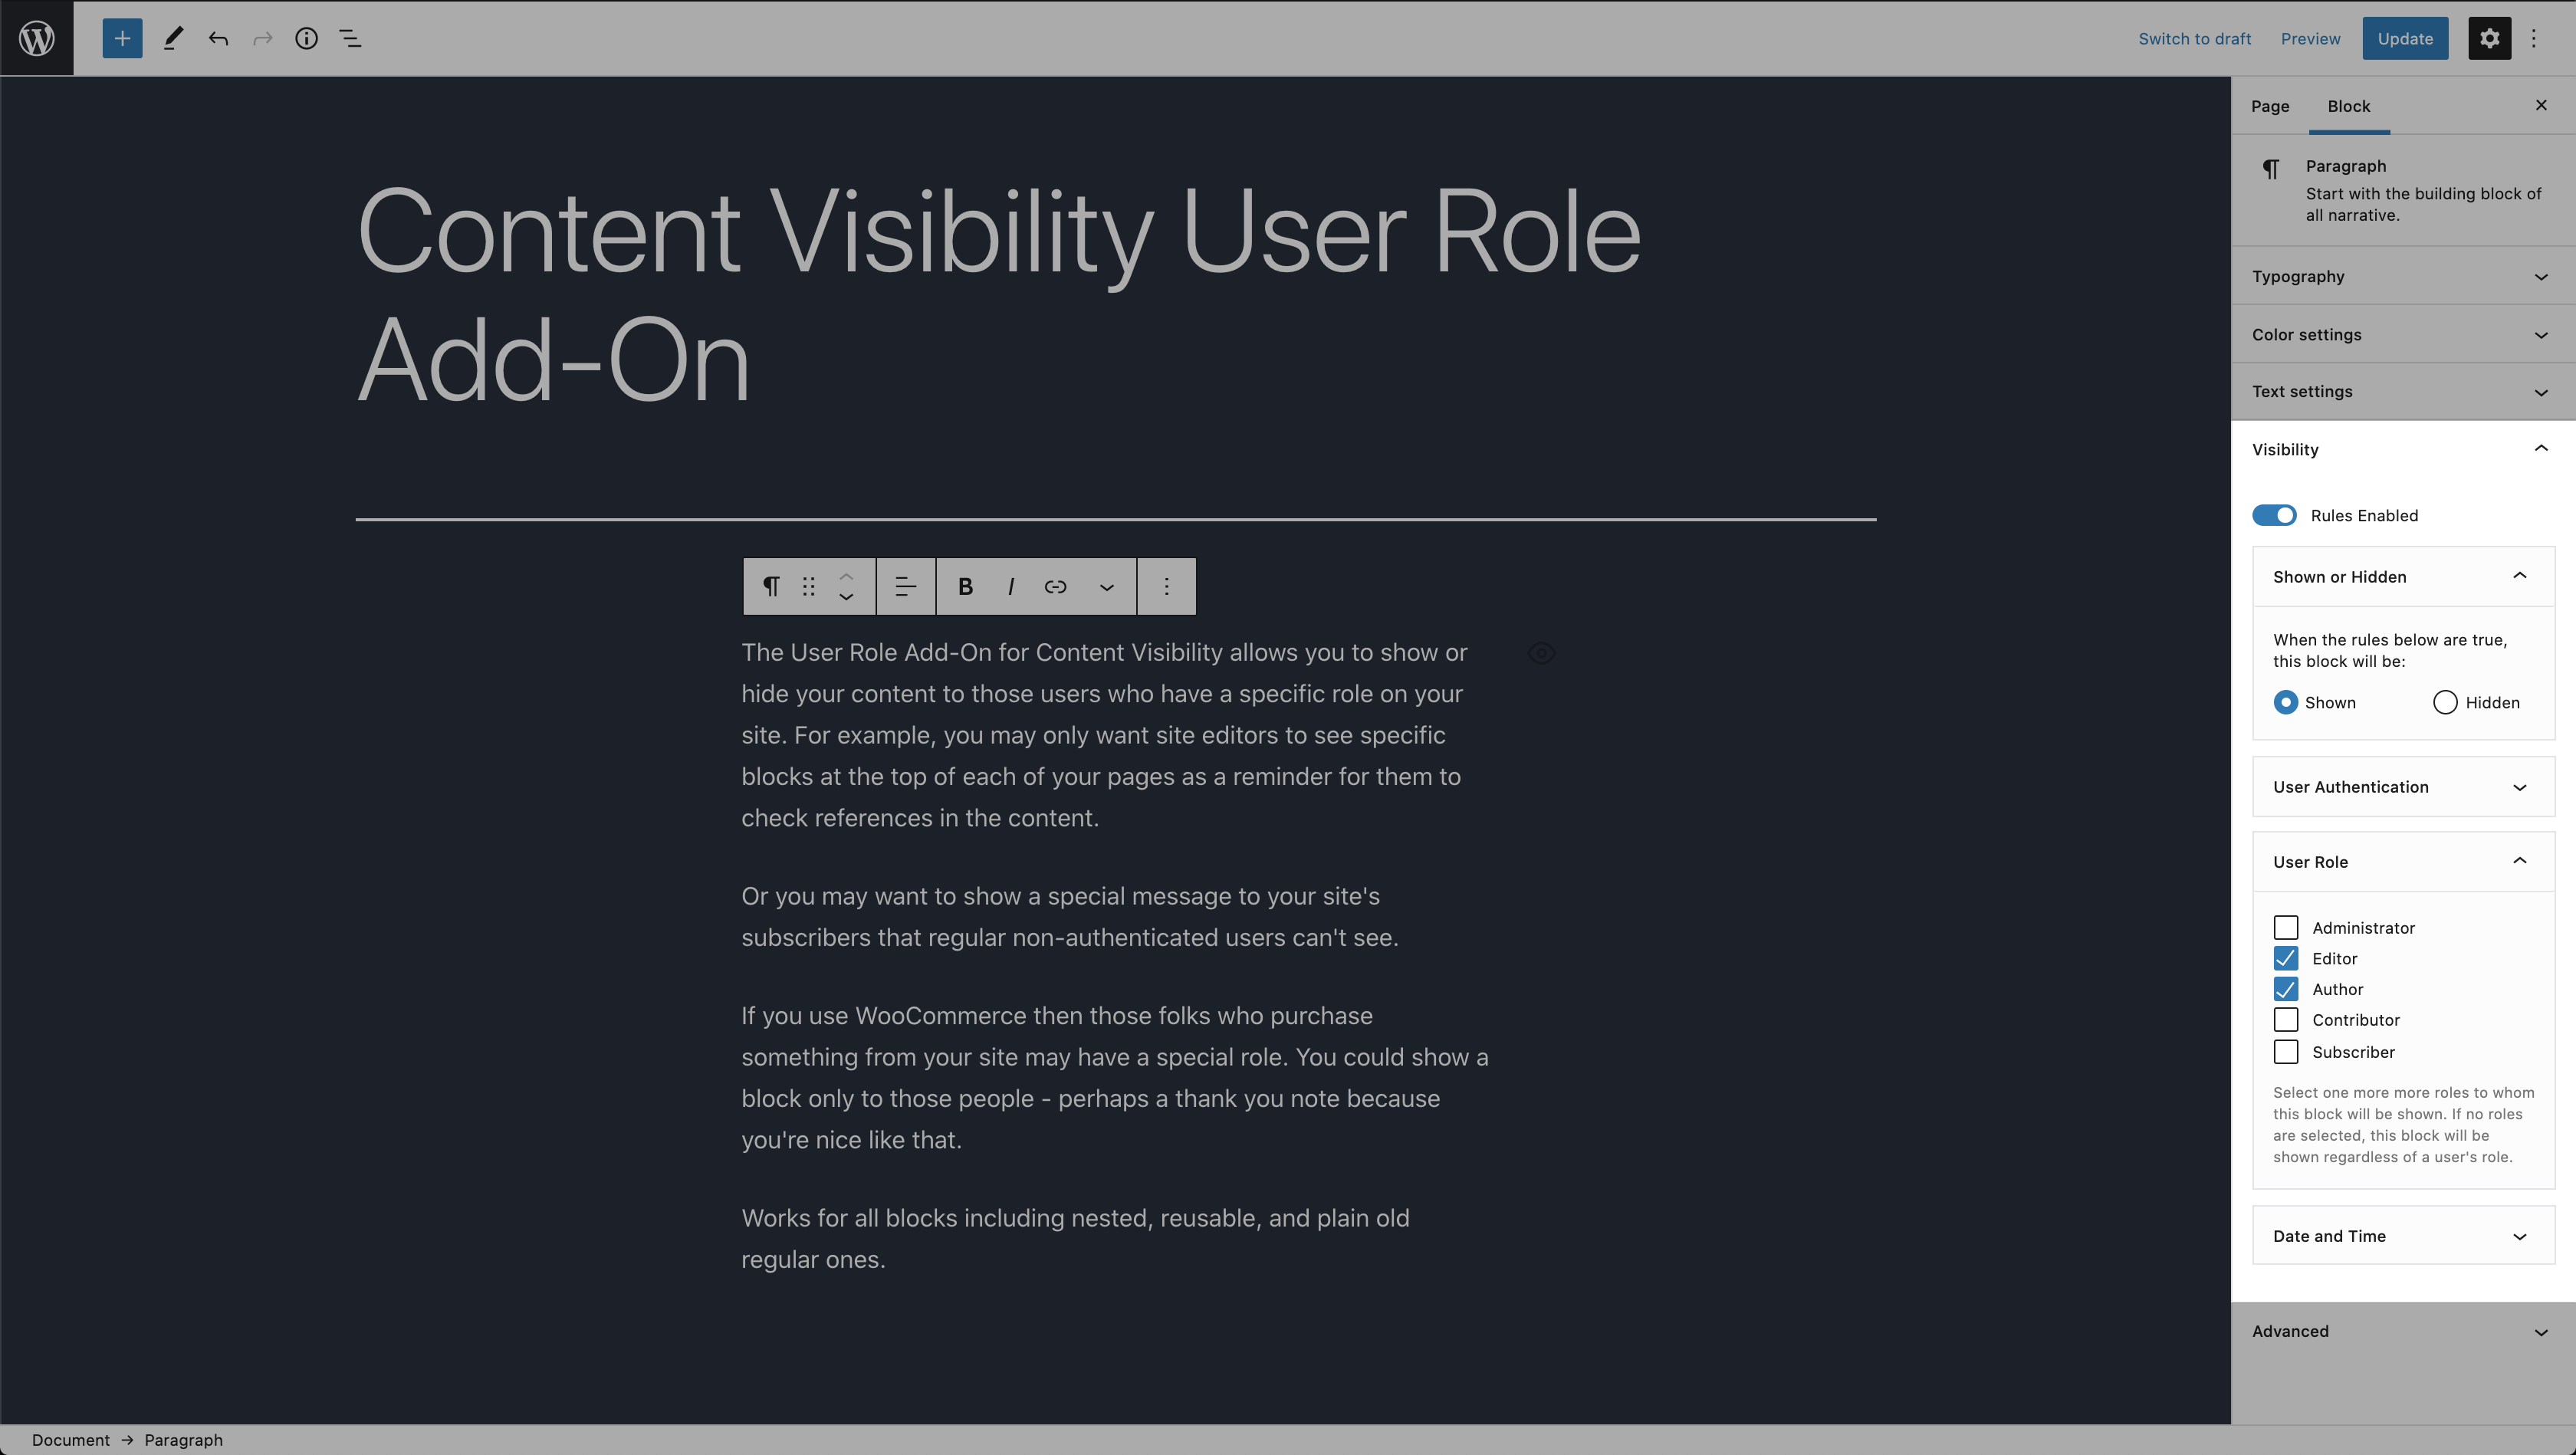 Content Visibility User Role